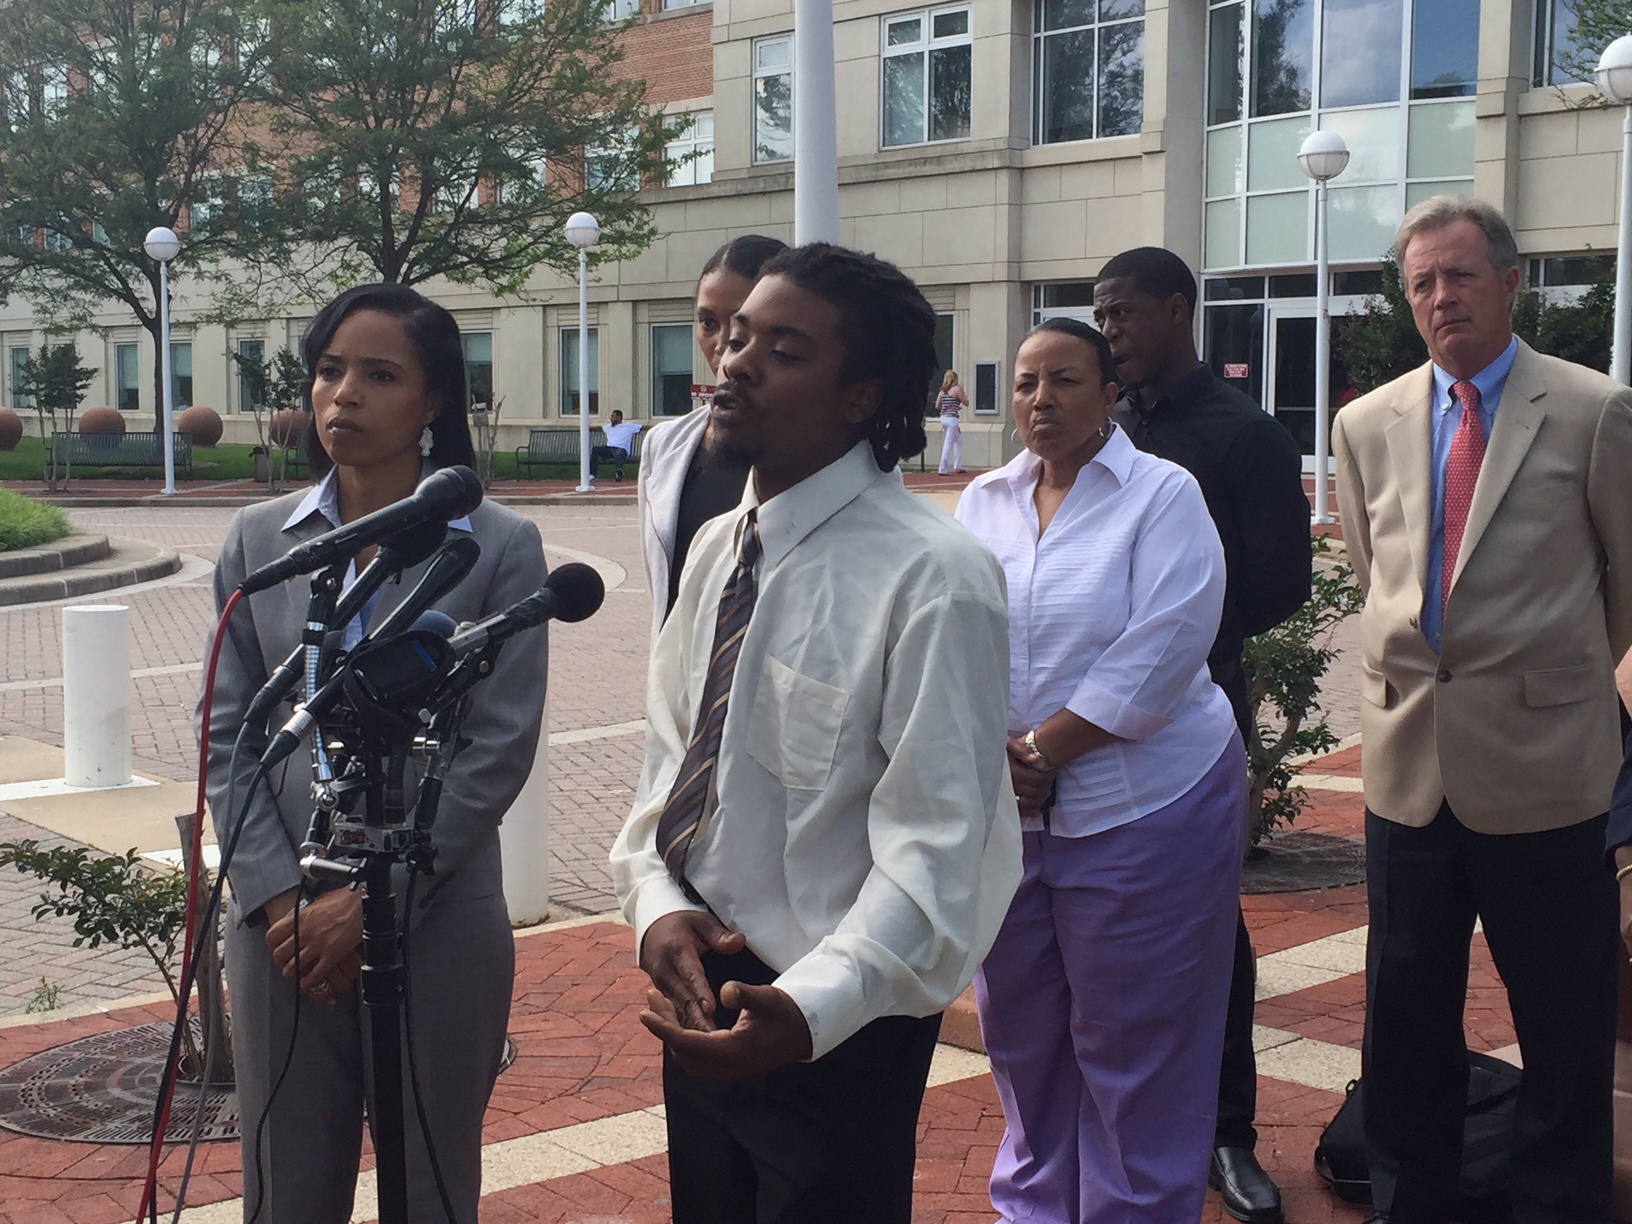 Young offenders sentenced to Prince George's Co. pilot program for education, service